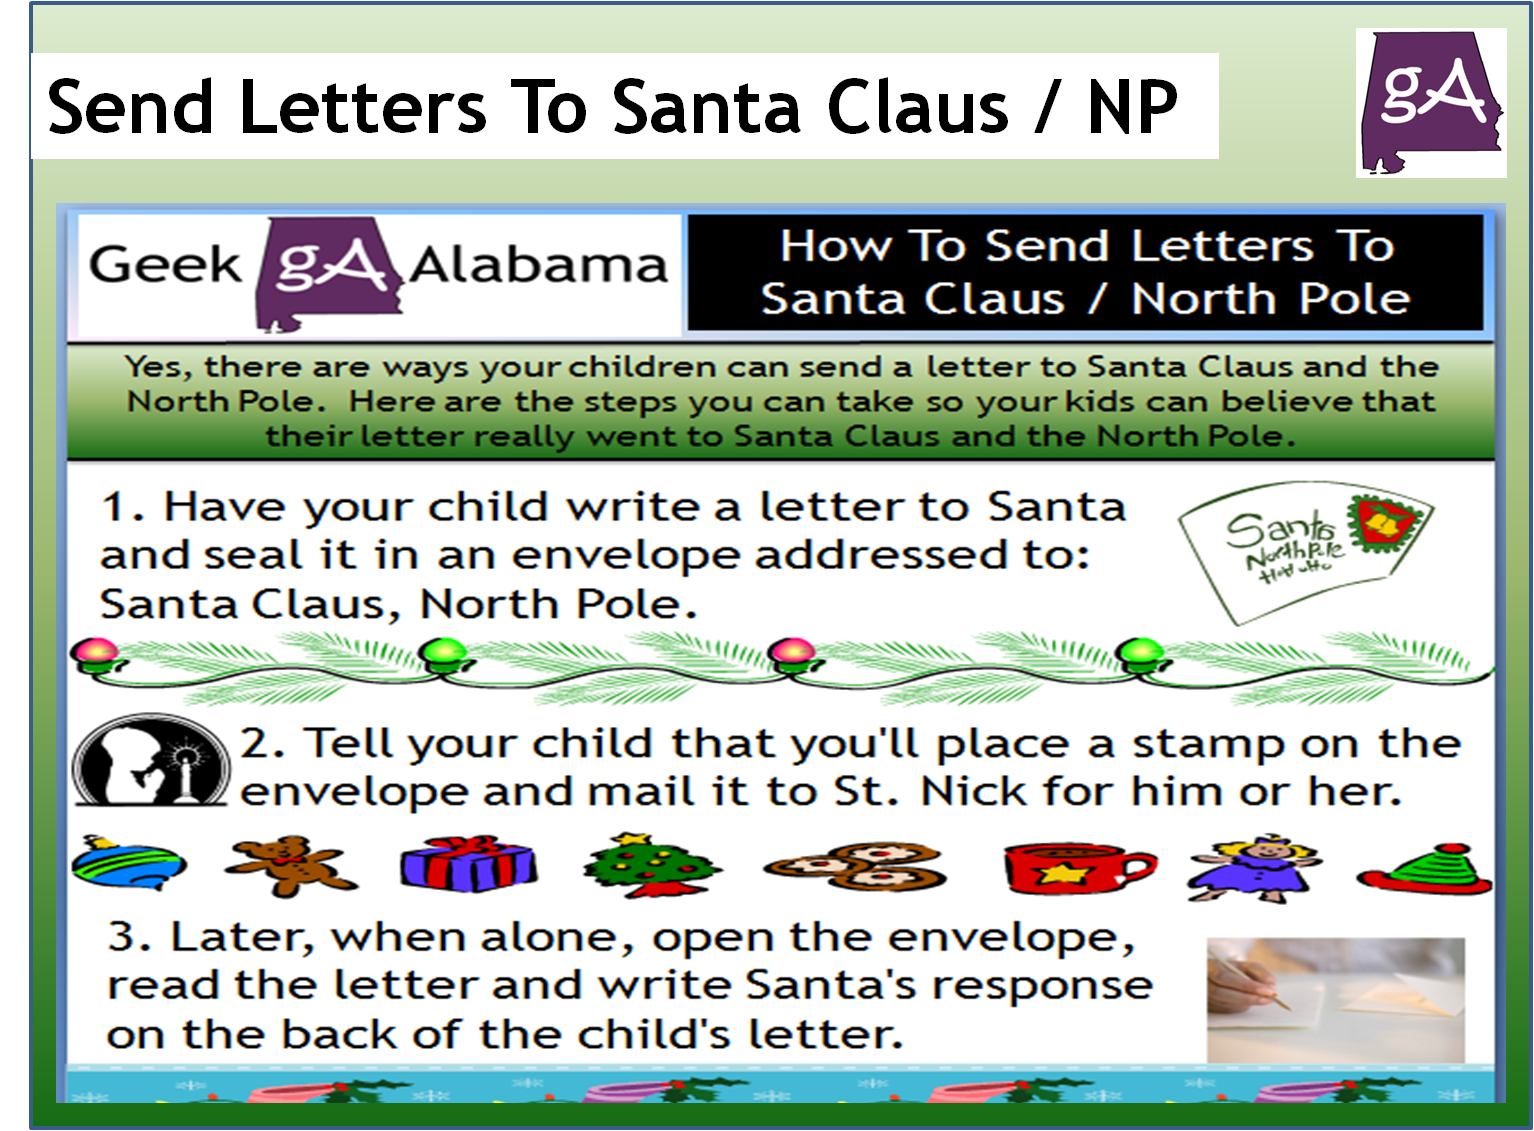 View The How To Send Letters To Santa Claus And North Pole